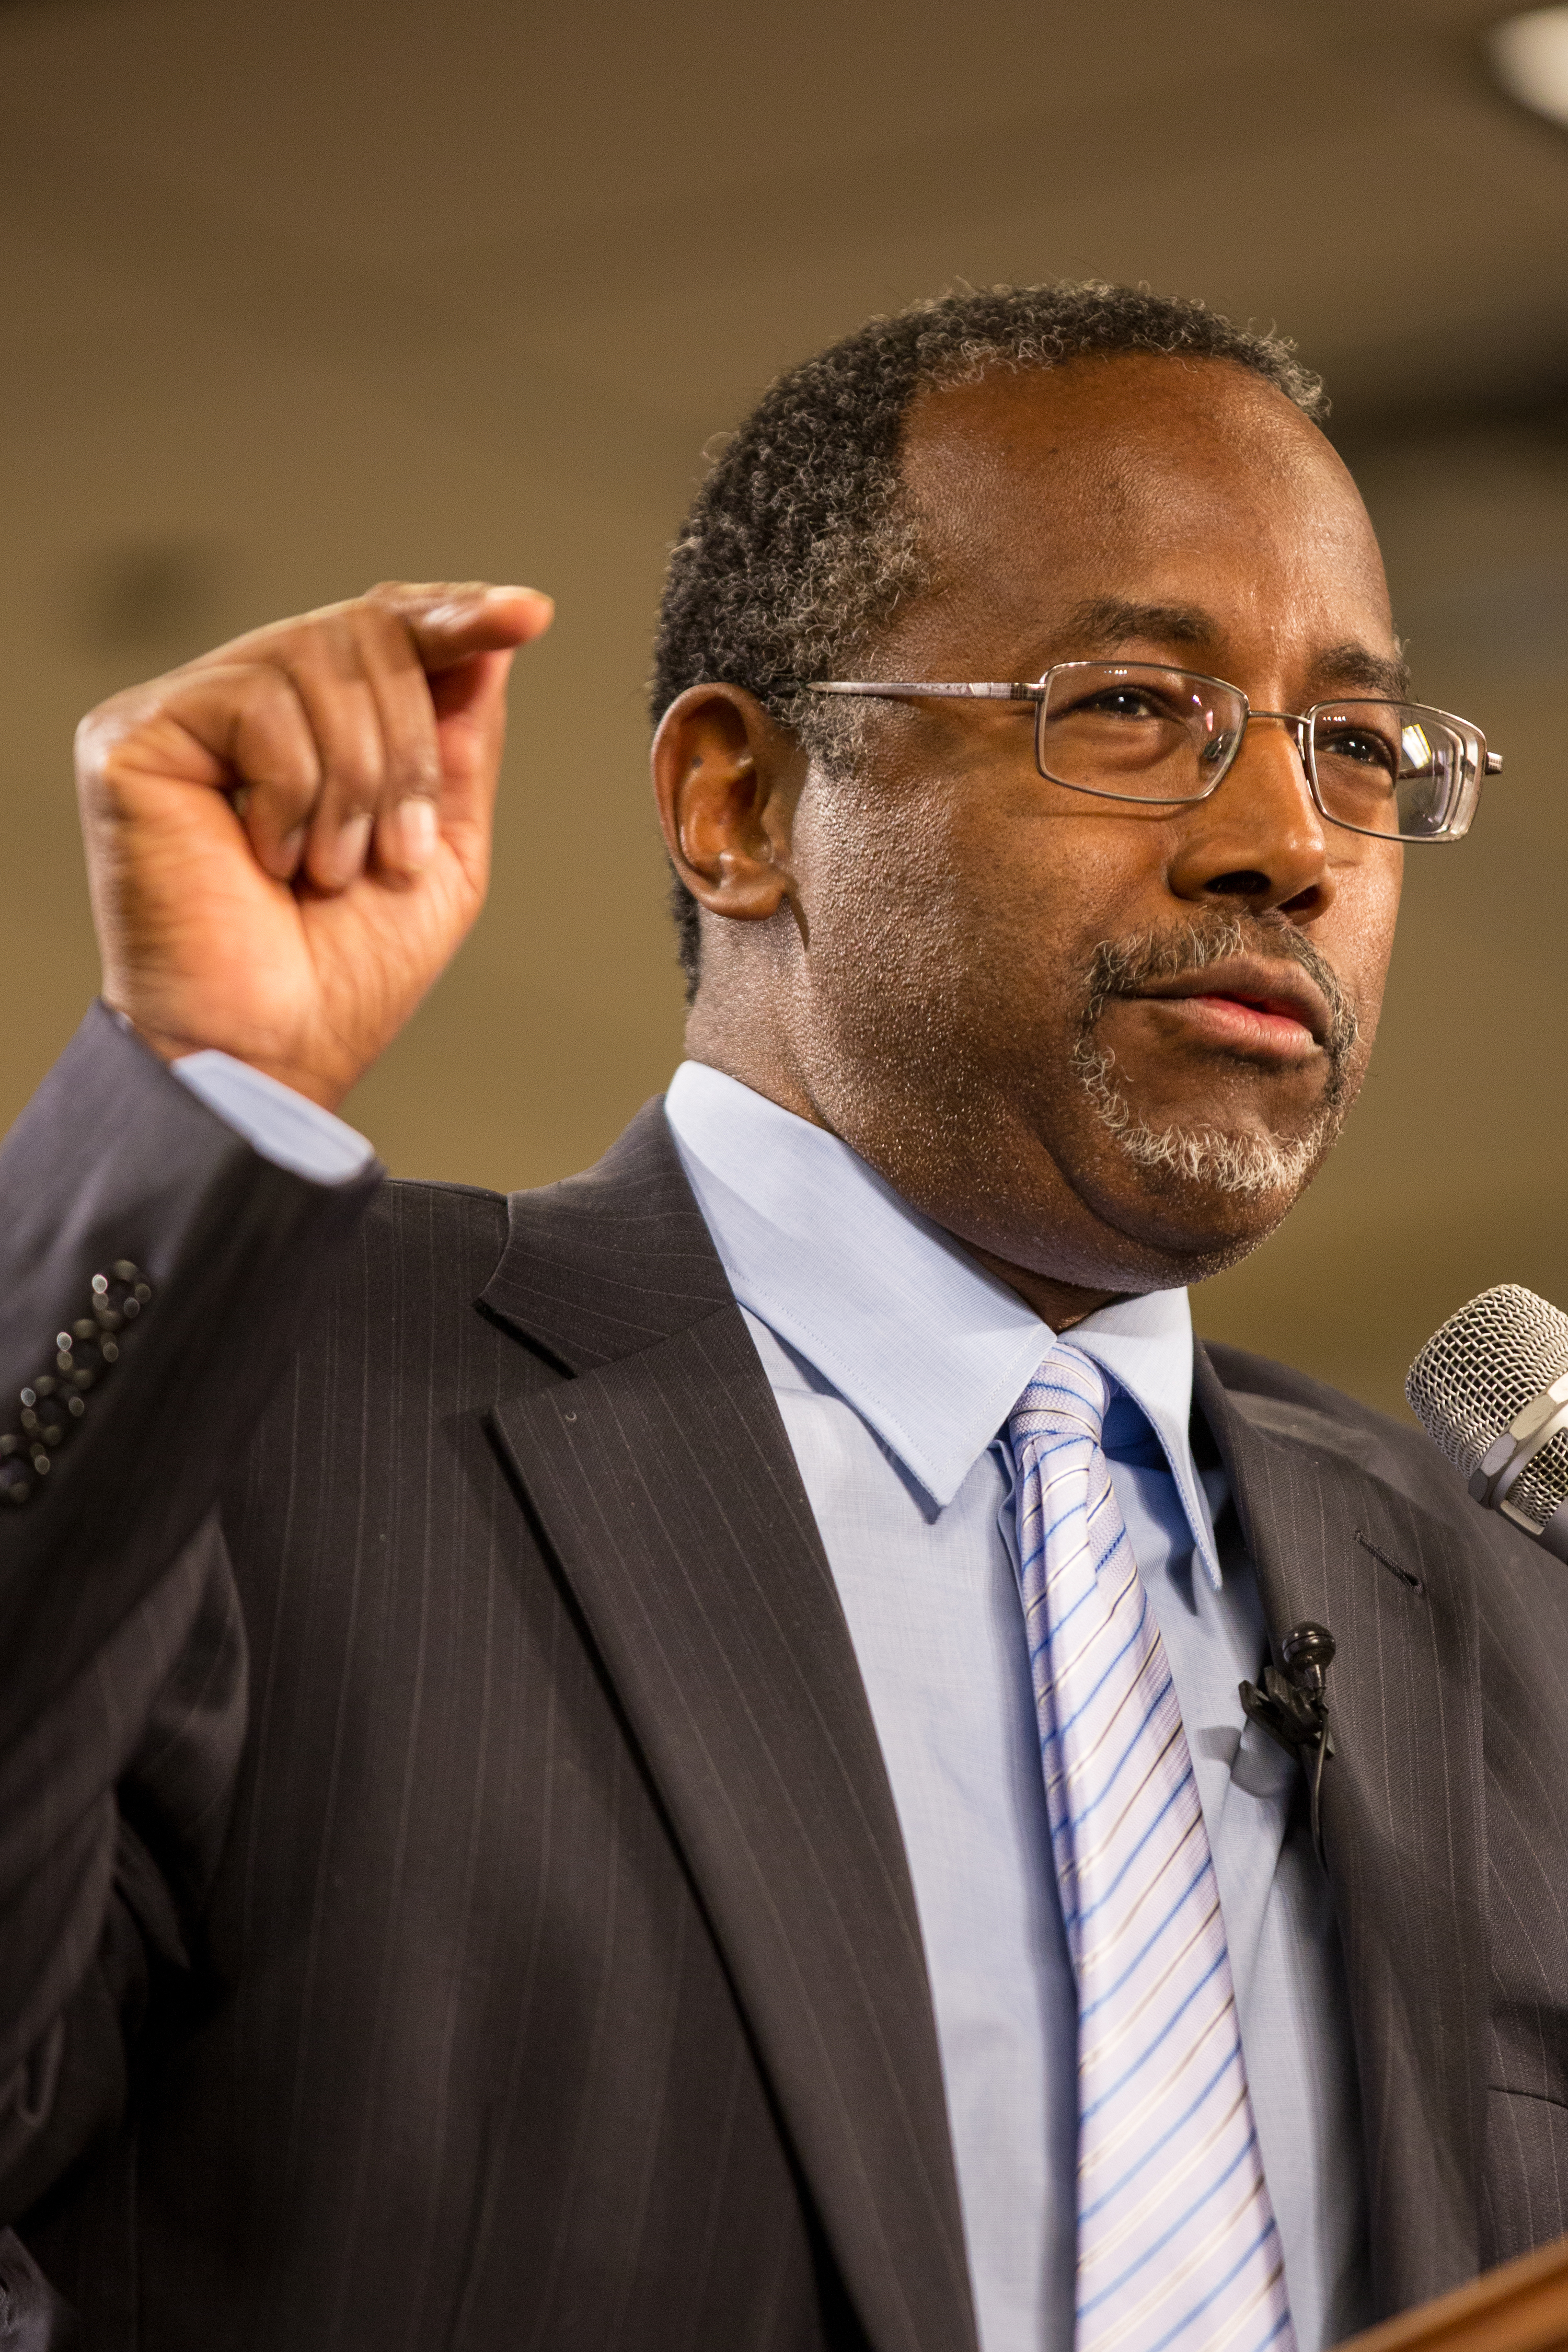 Pointing the wrong way: Carson is just plain wrong on the science